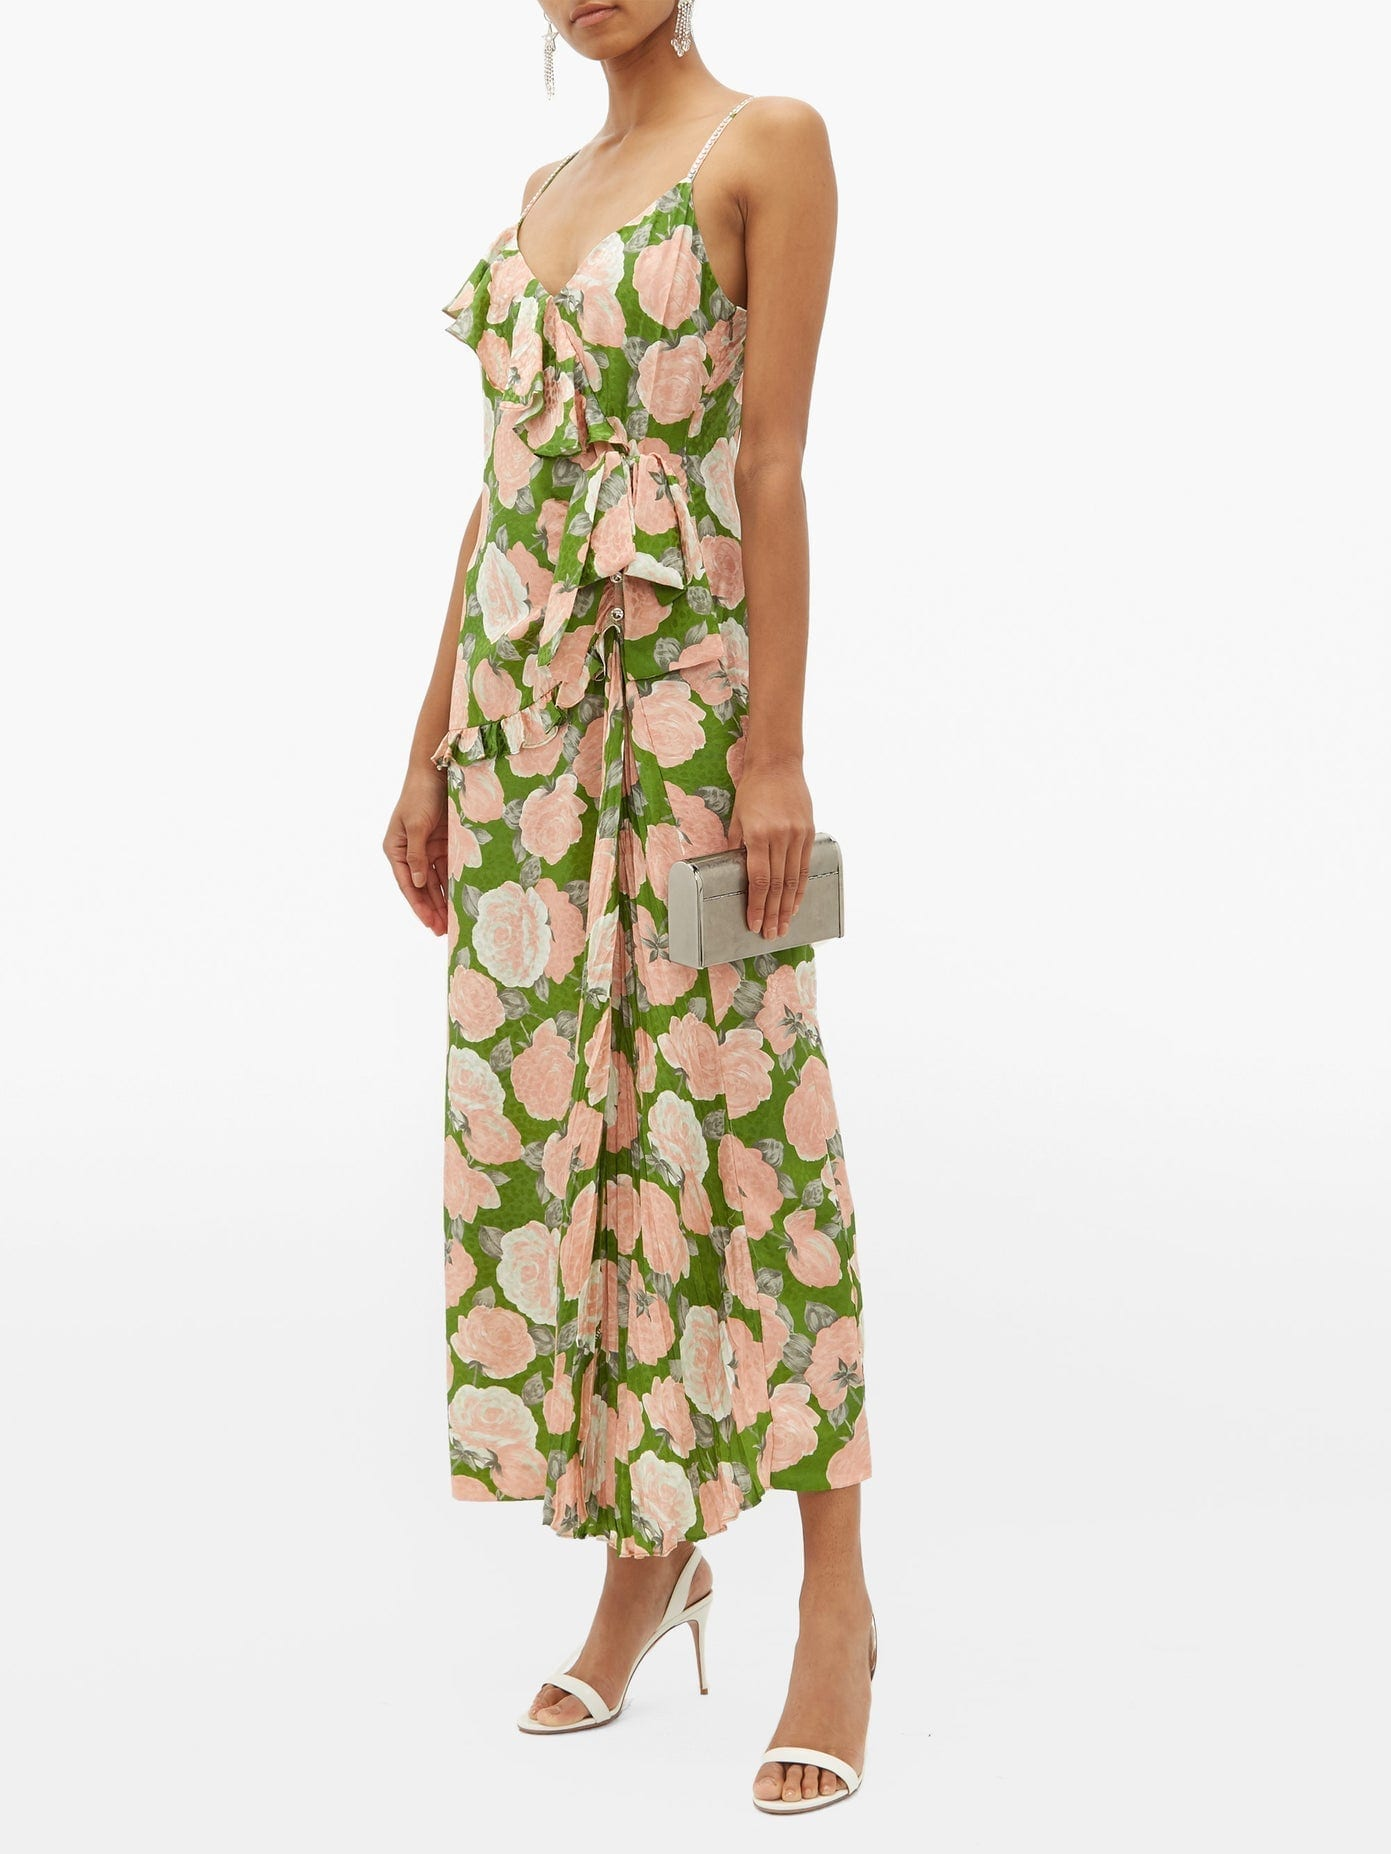 MIU MIU Ruffled Floral-print Silk-jacquard Dress